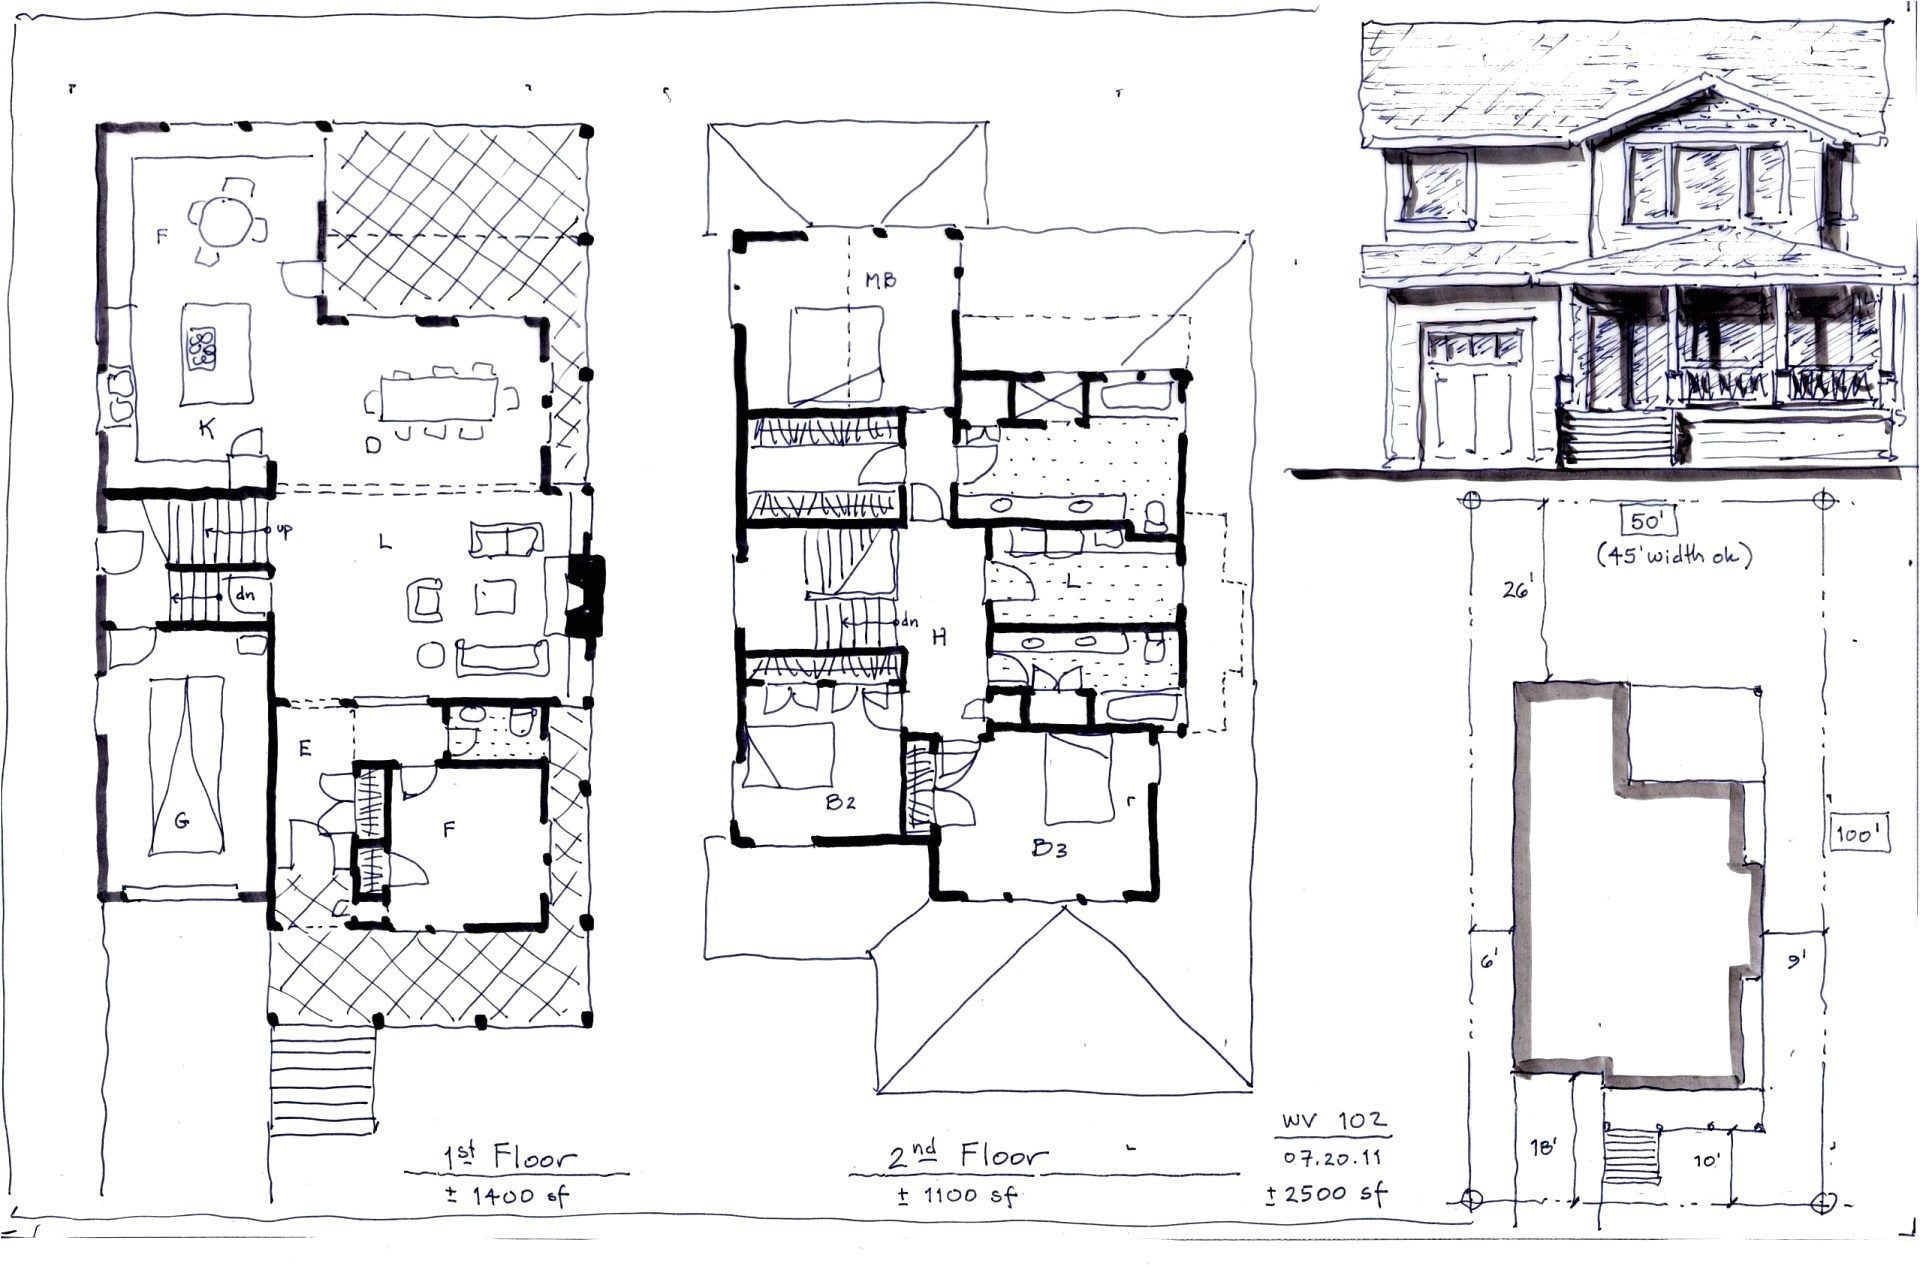 2000 sq ft ranch house plans with basement